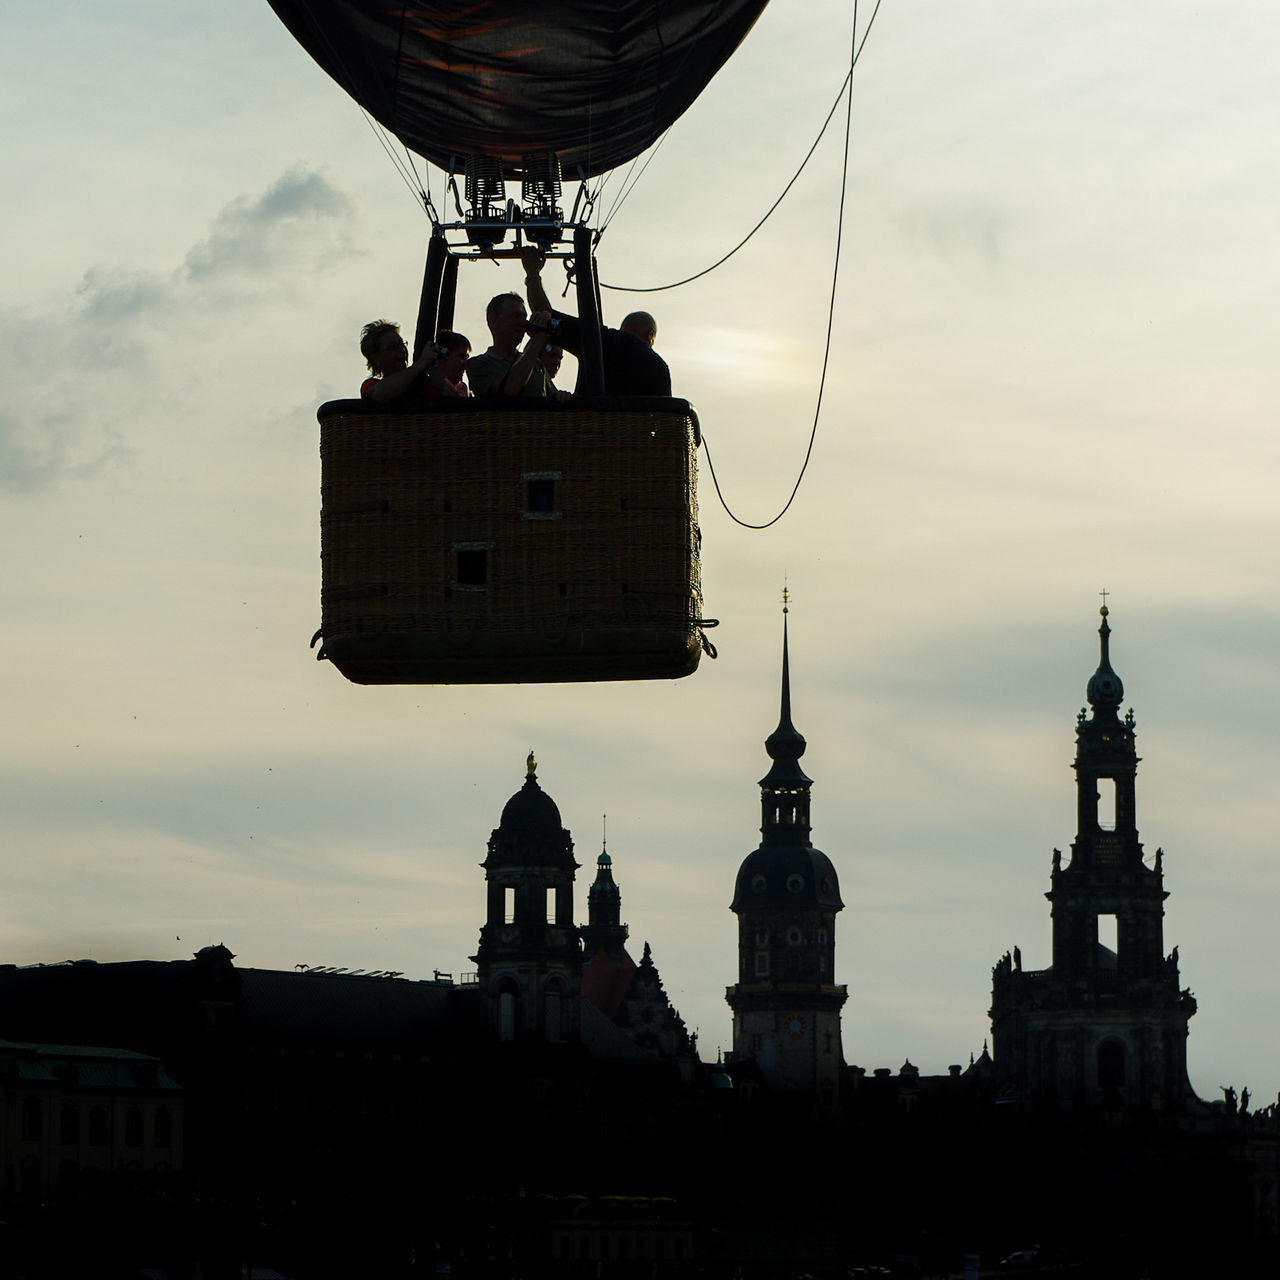 ready for take-off / Architecture Built Structure Church Cityscapes Clouds Dresden - Barock Statt Beton EyeEm Best Shots Fly Flying Flying High Hot Air Balloon Hot Air Balloons Just Getting Started Low Angle View No People Outdoors Photography Shootermag Silhouette Sky Slow Tower Trip Beautifully Organized My Year My View